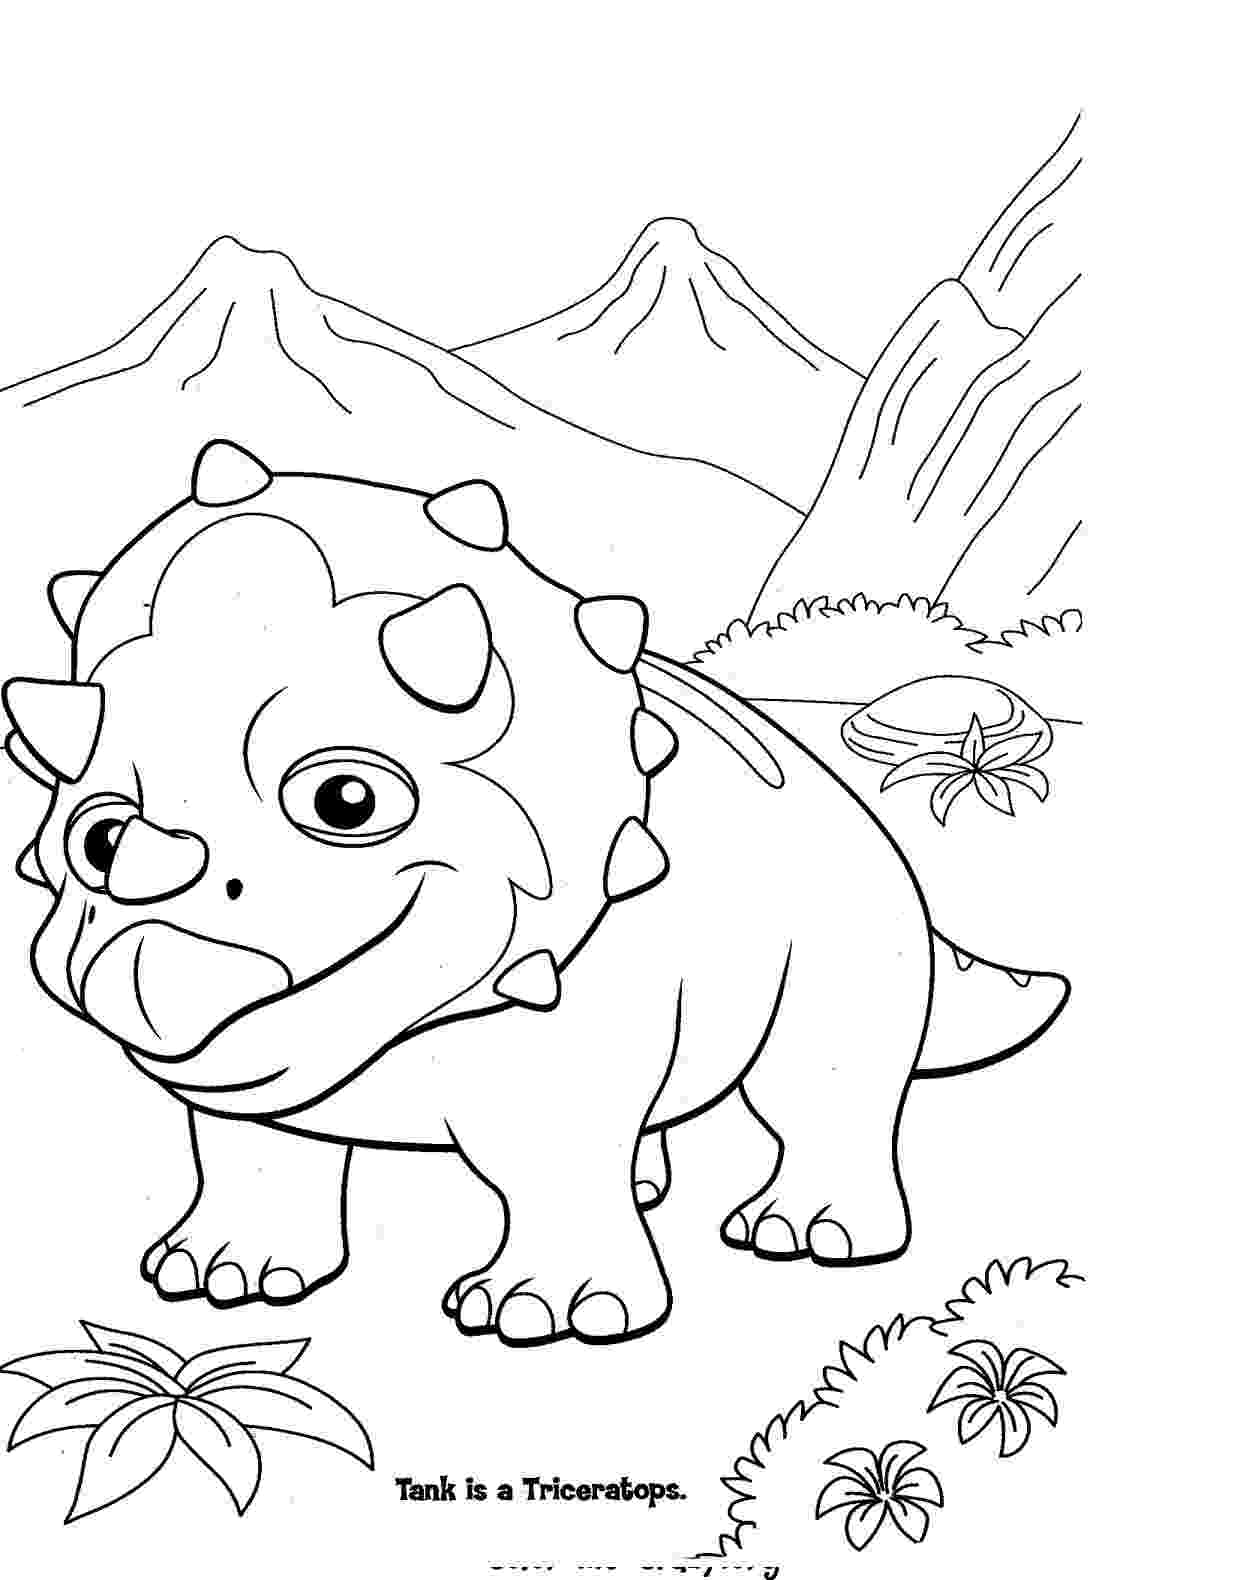 coloring dinosaur pictures cute cartoon dinosaur coloring page free printable coloring pictures dinosaur